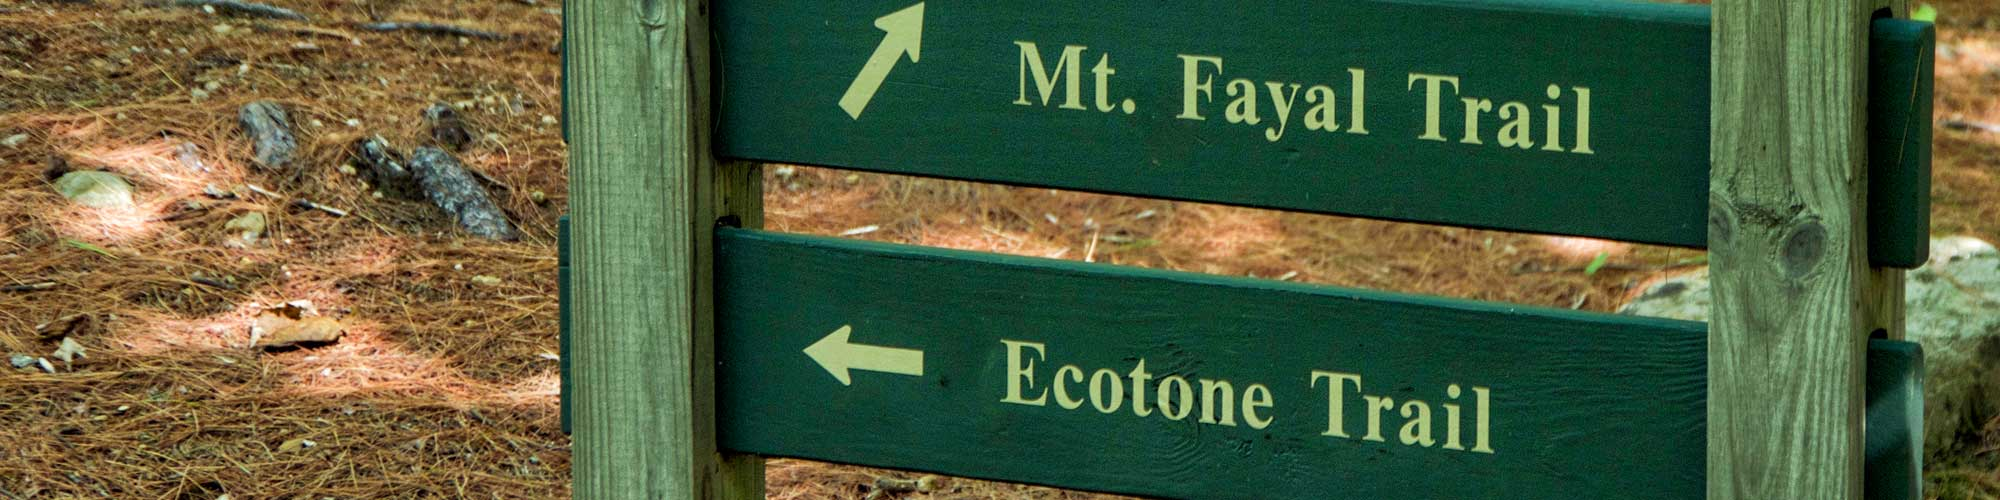 Hiking trail signs pointing to Ecotone Trail and Mount Fayal Trail